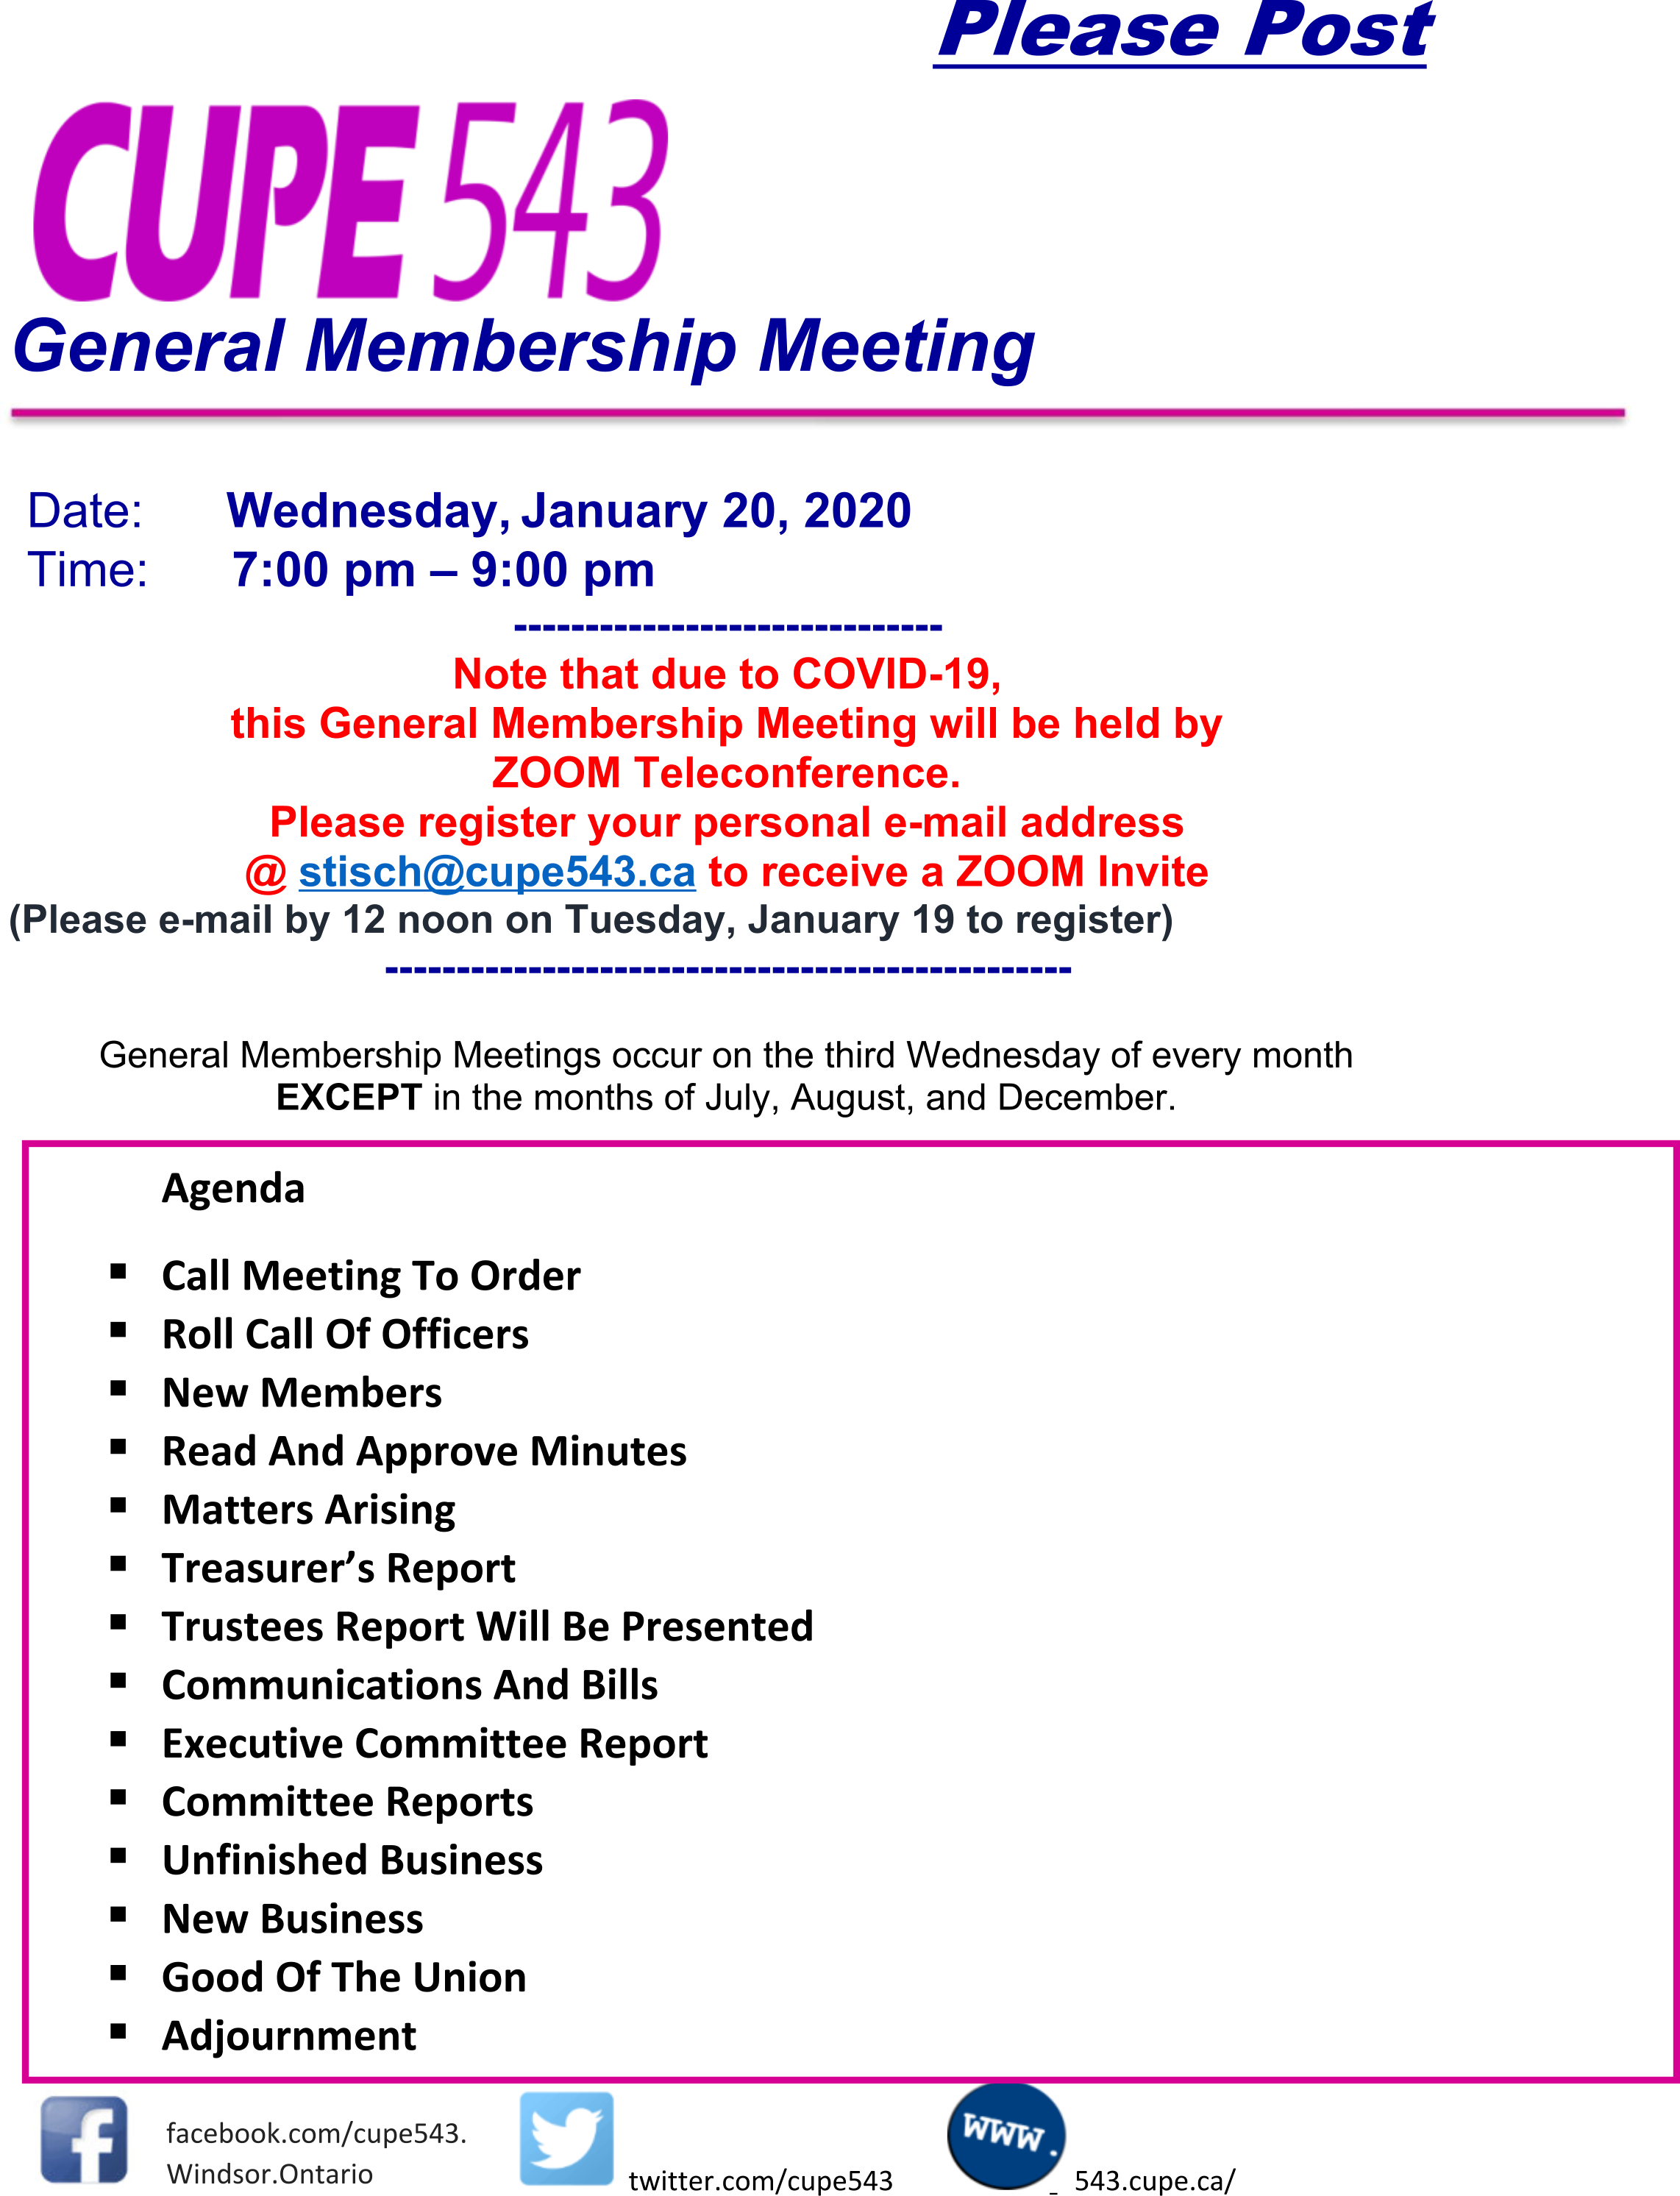 General Membership Meeting - Preregister on Zoom to Attend @ Zoom